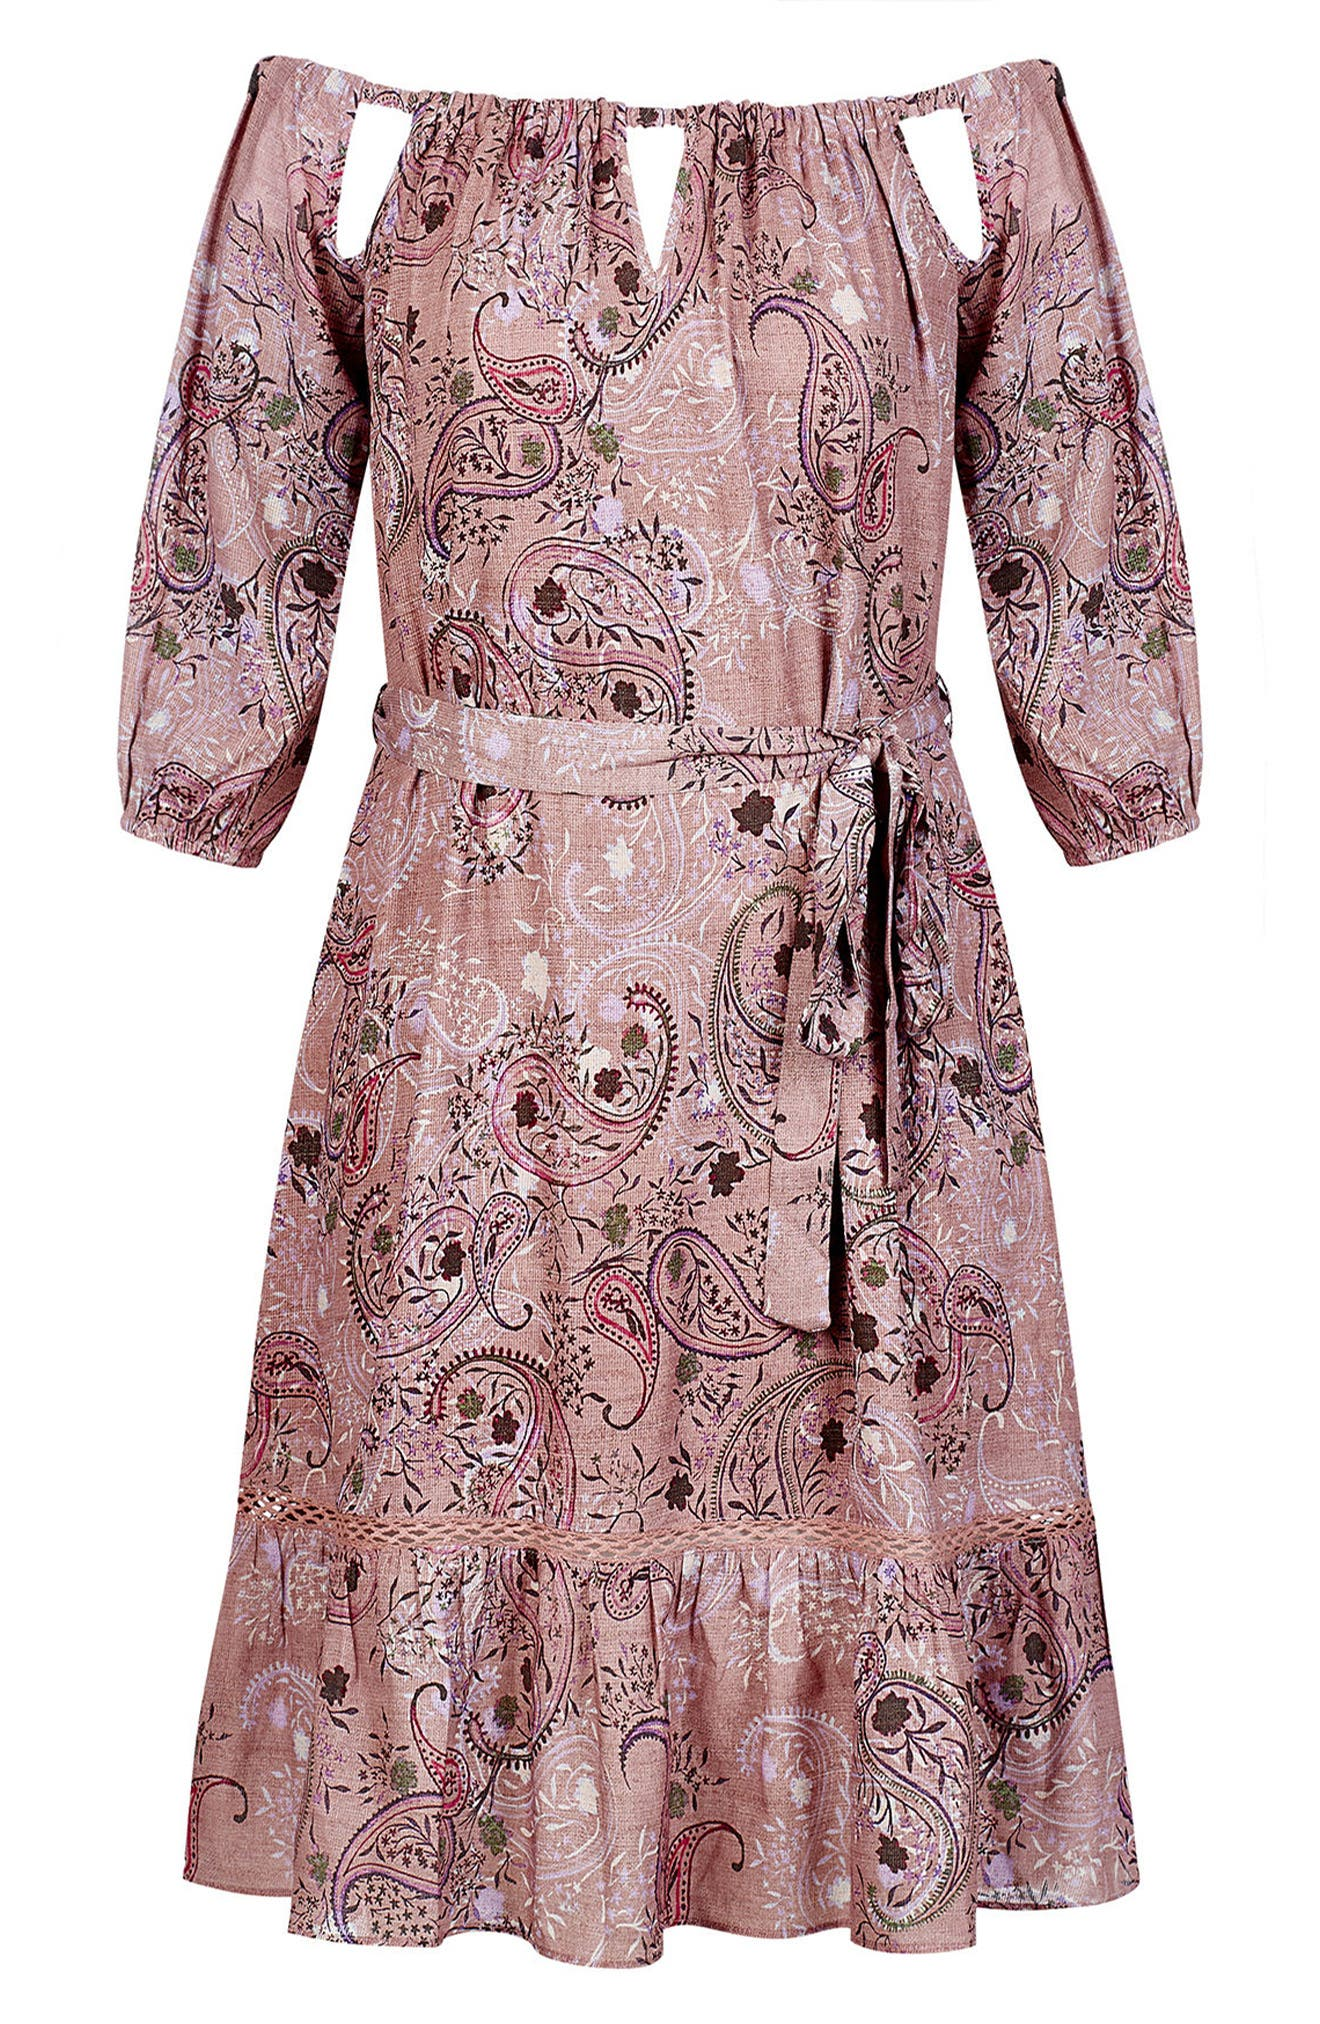 Luxe Paisley Dress,                             Alternate thumbnail 3, color,                             LUXE PAISLEY